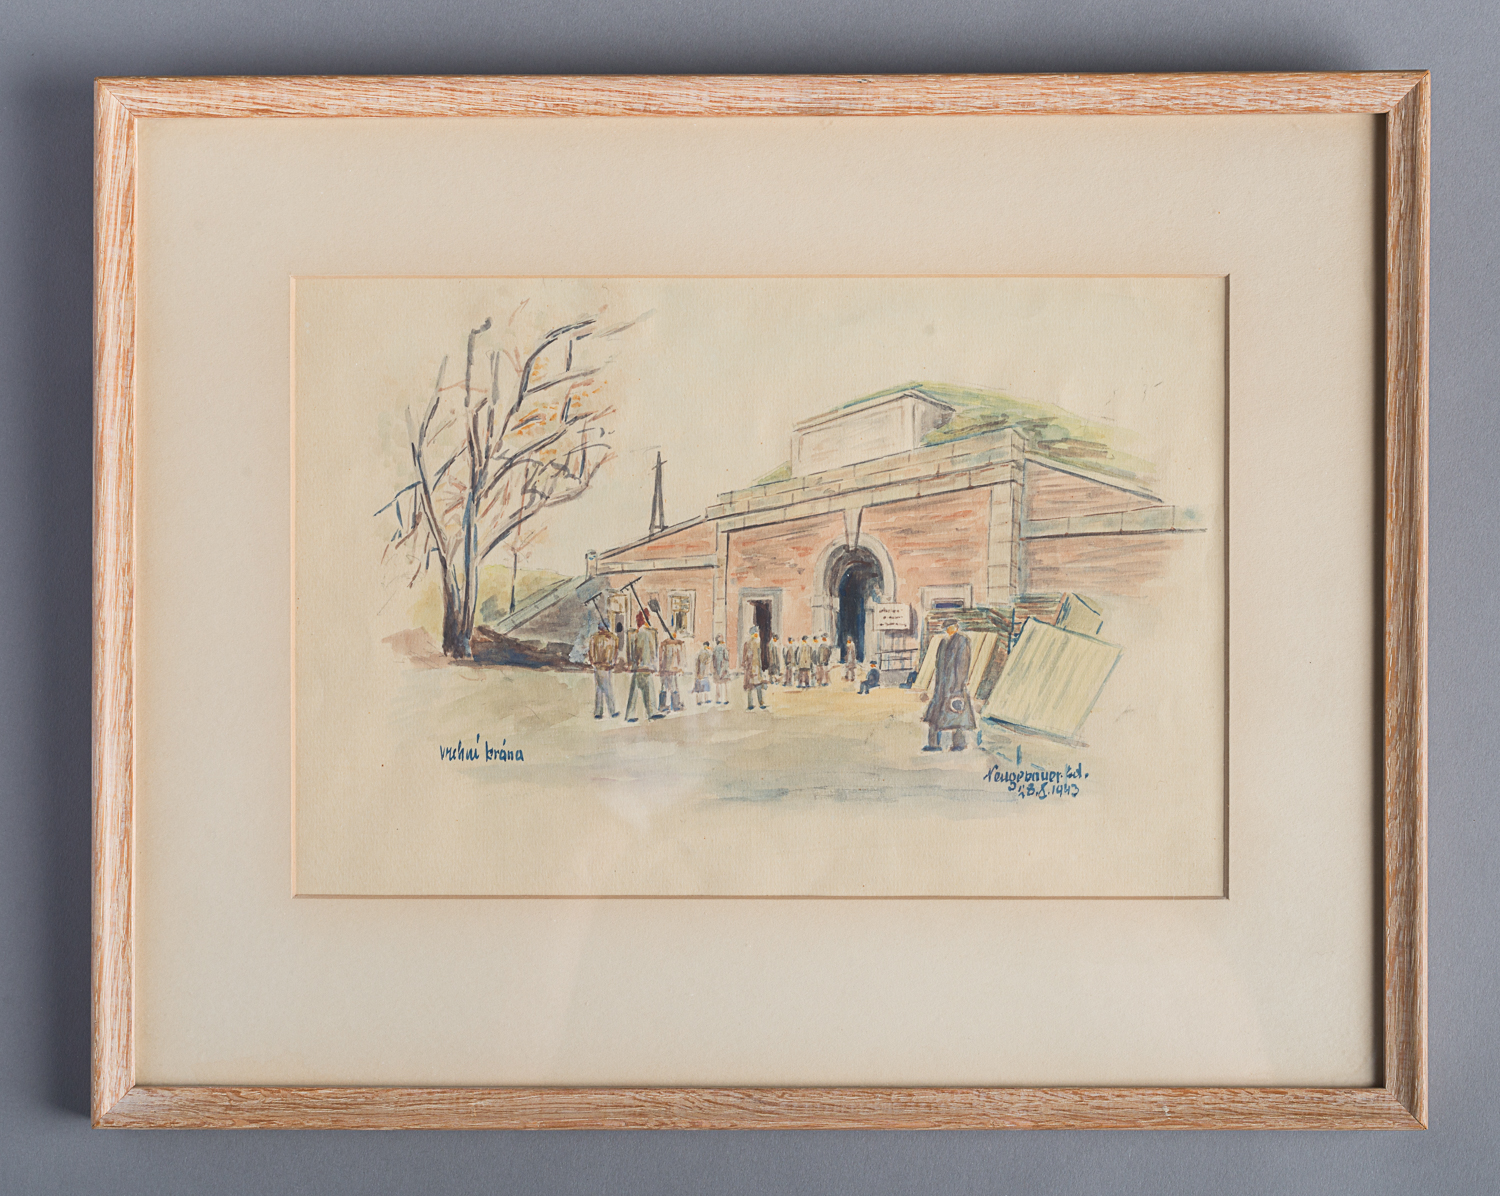 This is a watercolour painting of the main entrance gate to the Theresienstadt ghetto in the Czech Republic.The painting was created by Edvard Neugebauer in Terezin (Theresienstadt) on August 28, 1943. (Photo: Peter Berra)